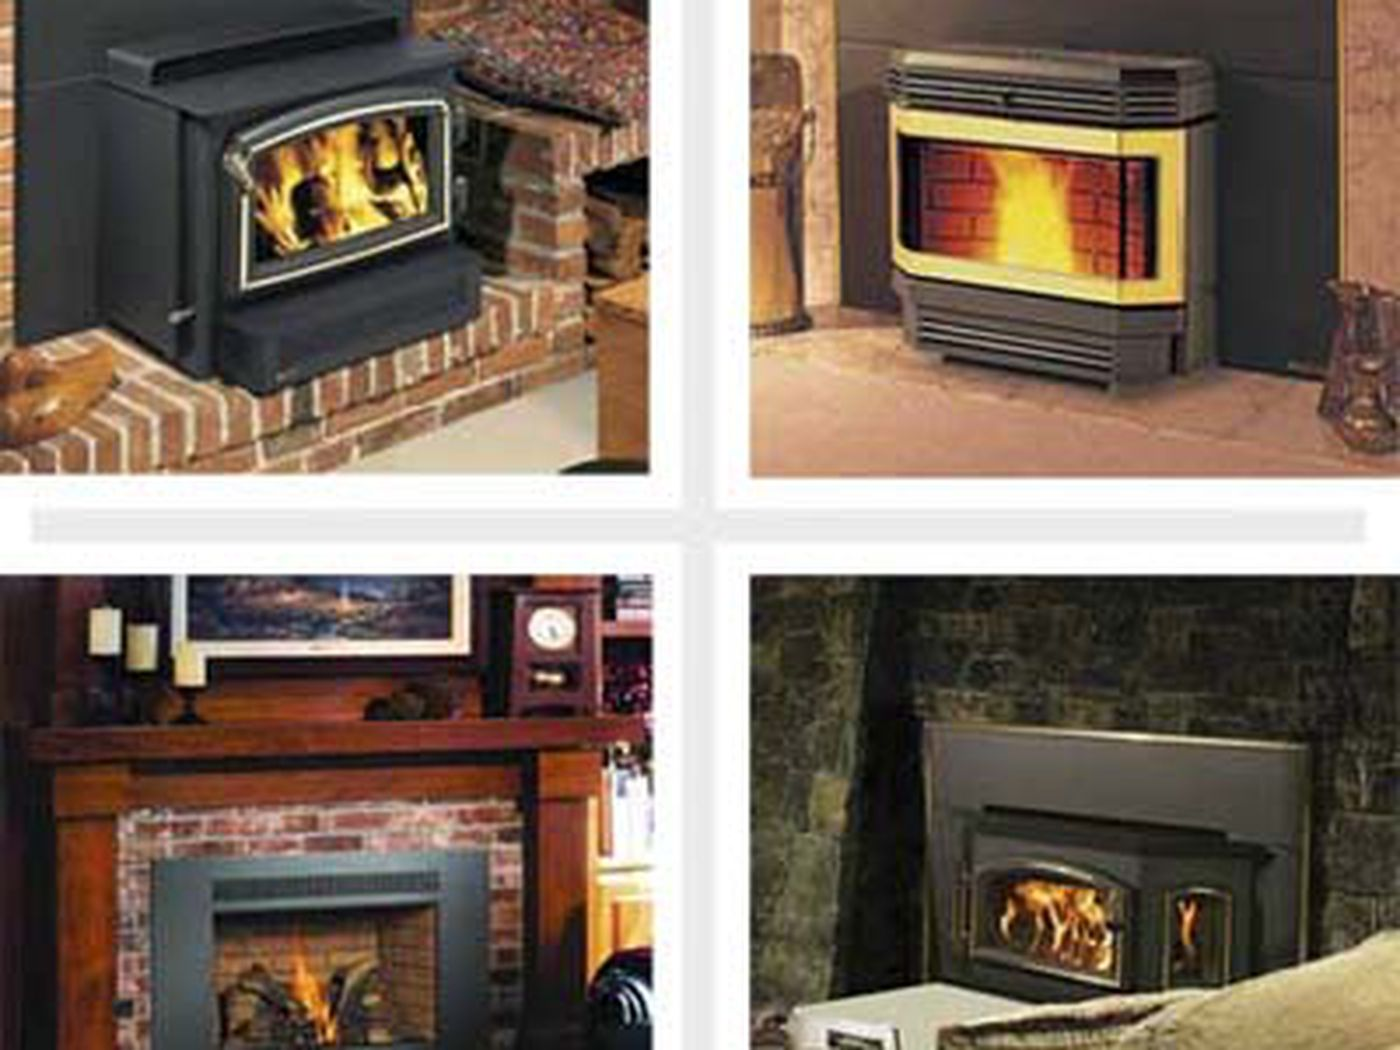 Fireplace Inserts Upgrade Costs And Best Models This Old House